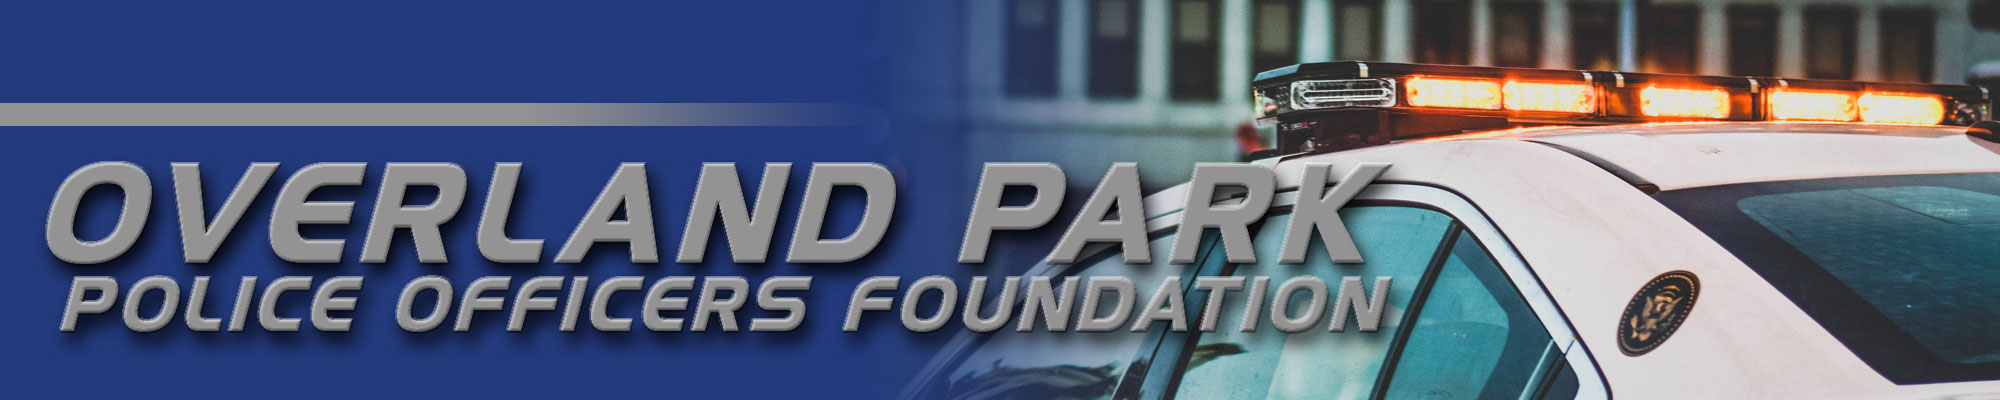 Overland Park Police Officers Foundation